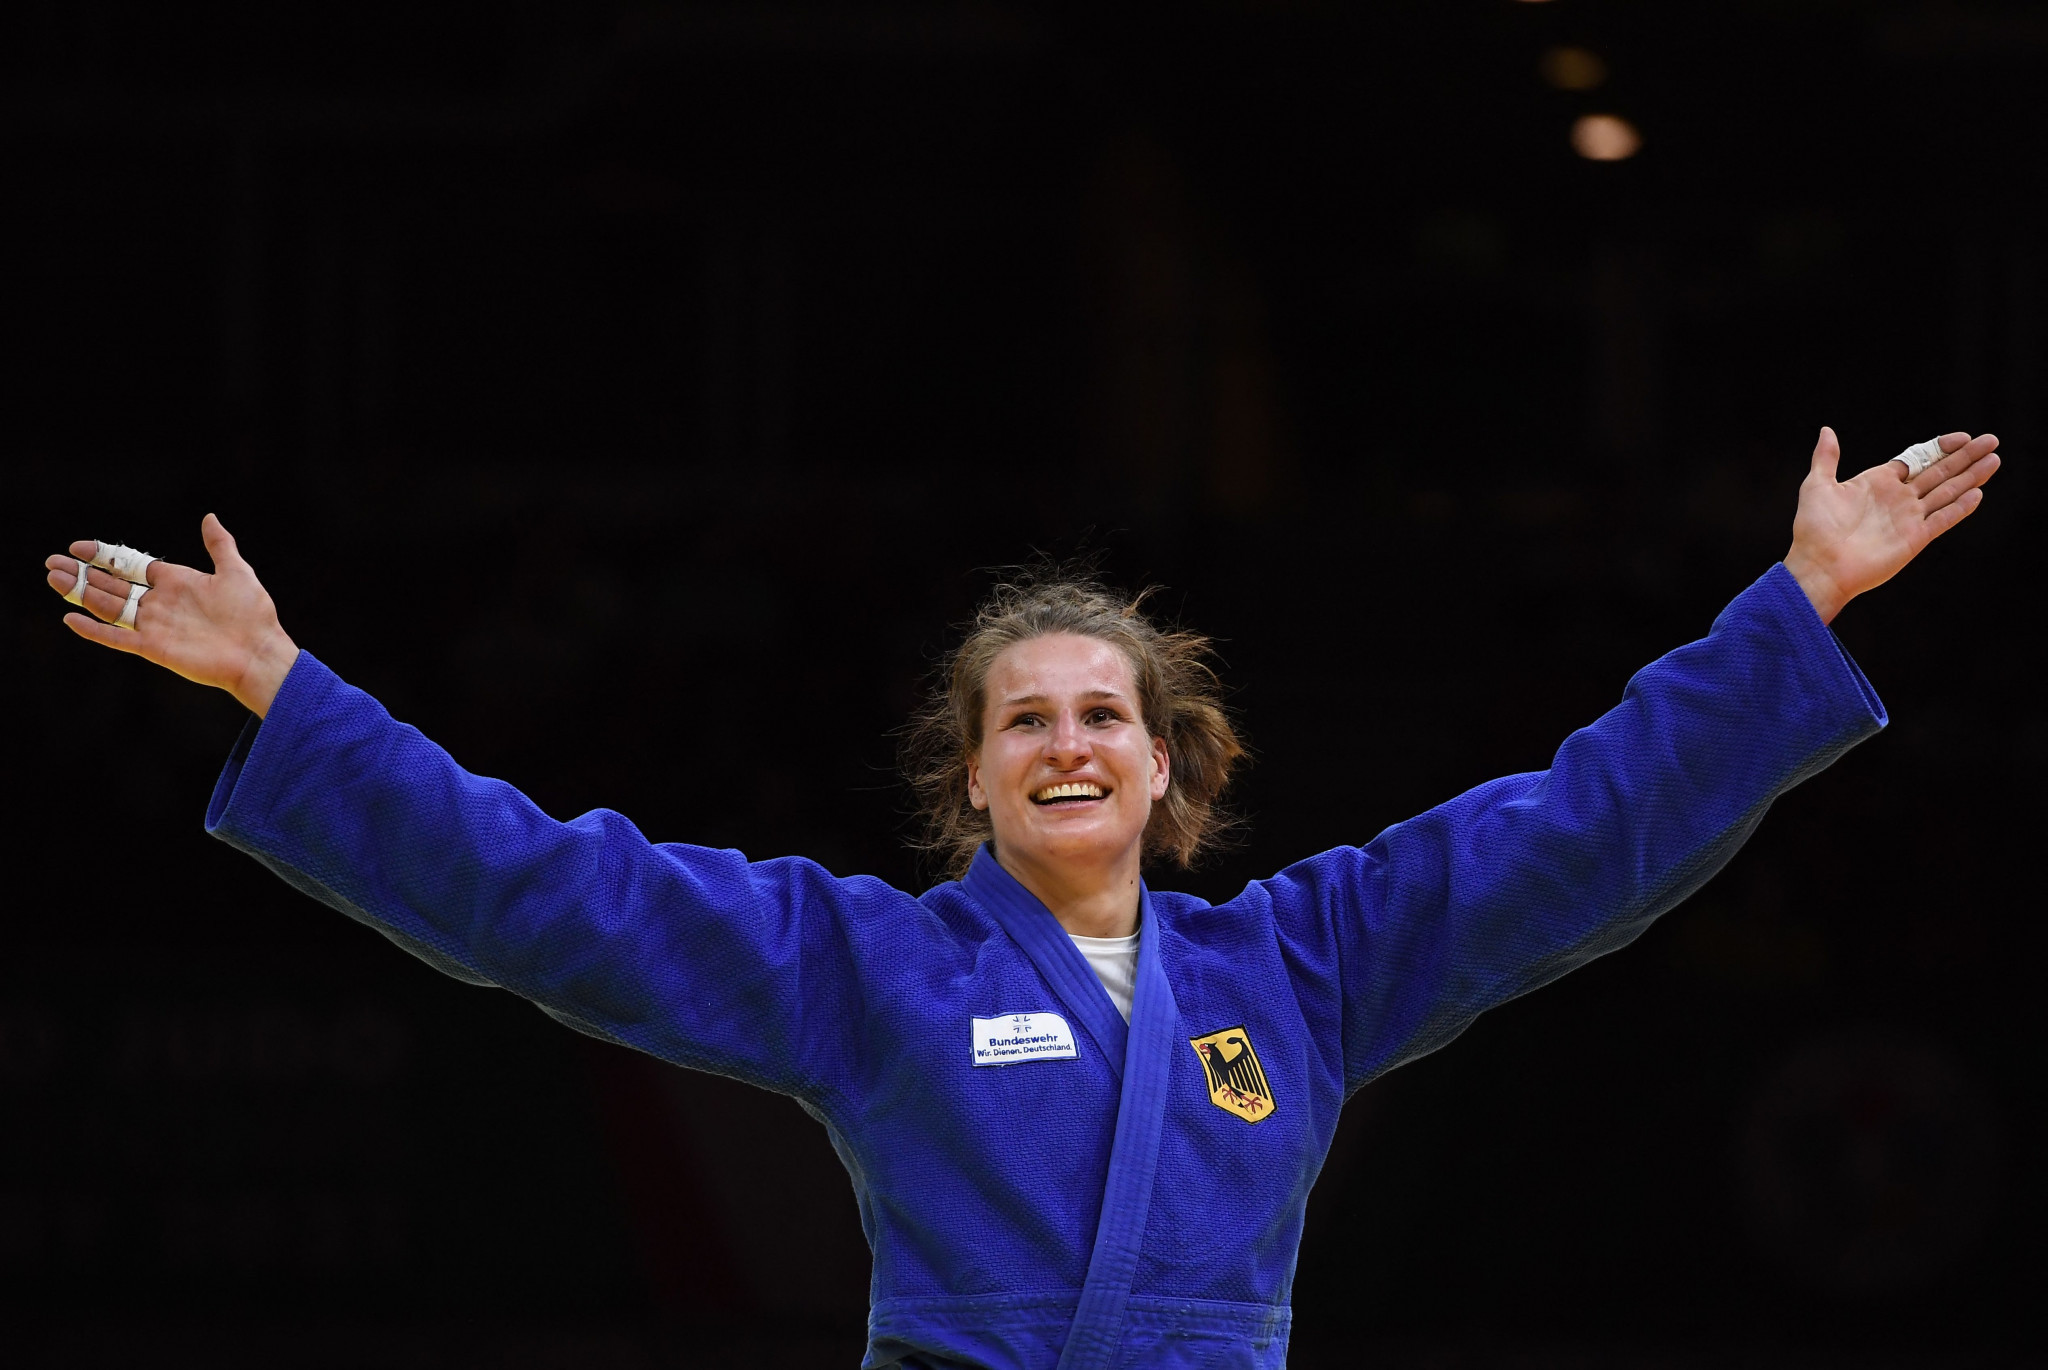 Wagner claims first world gold medal at IJF World Judo Championships